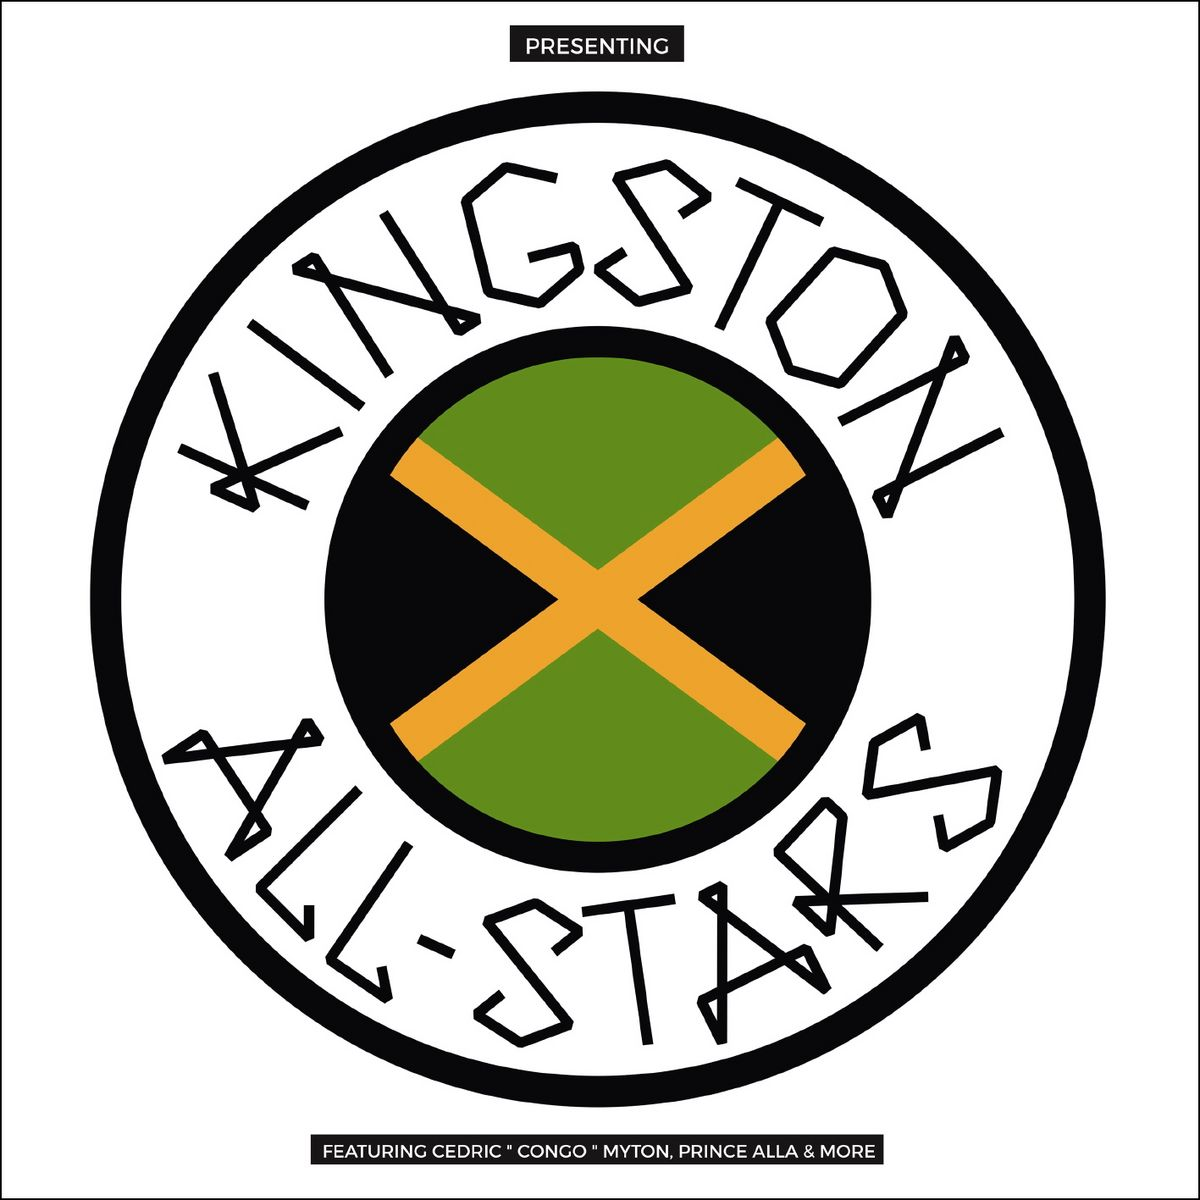 KINGSTON ALL-STARS – Kingston All-Stars